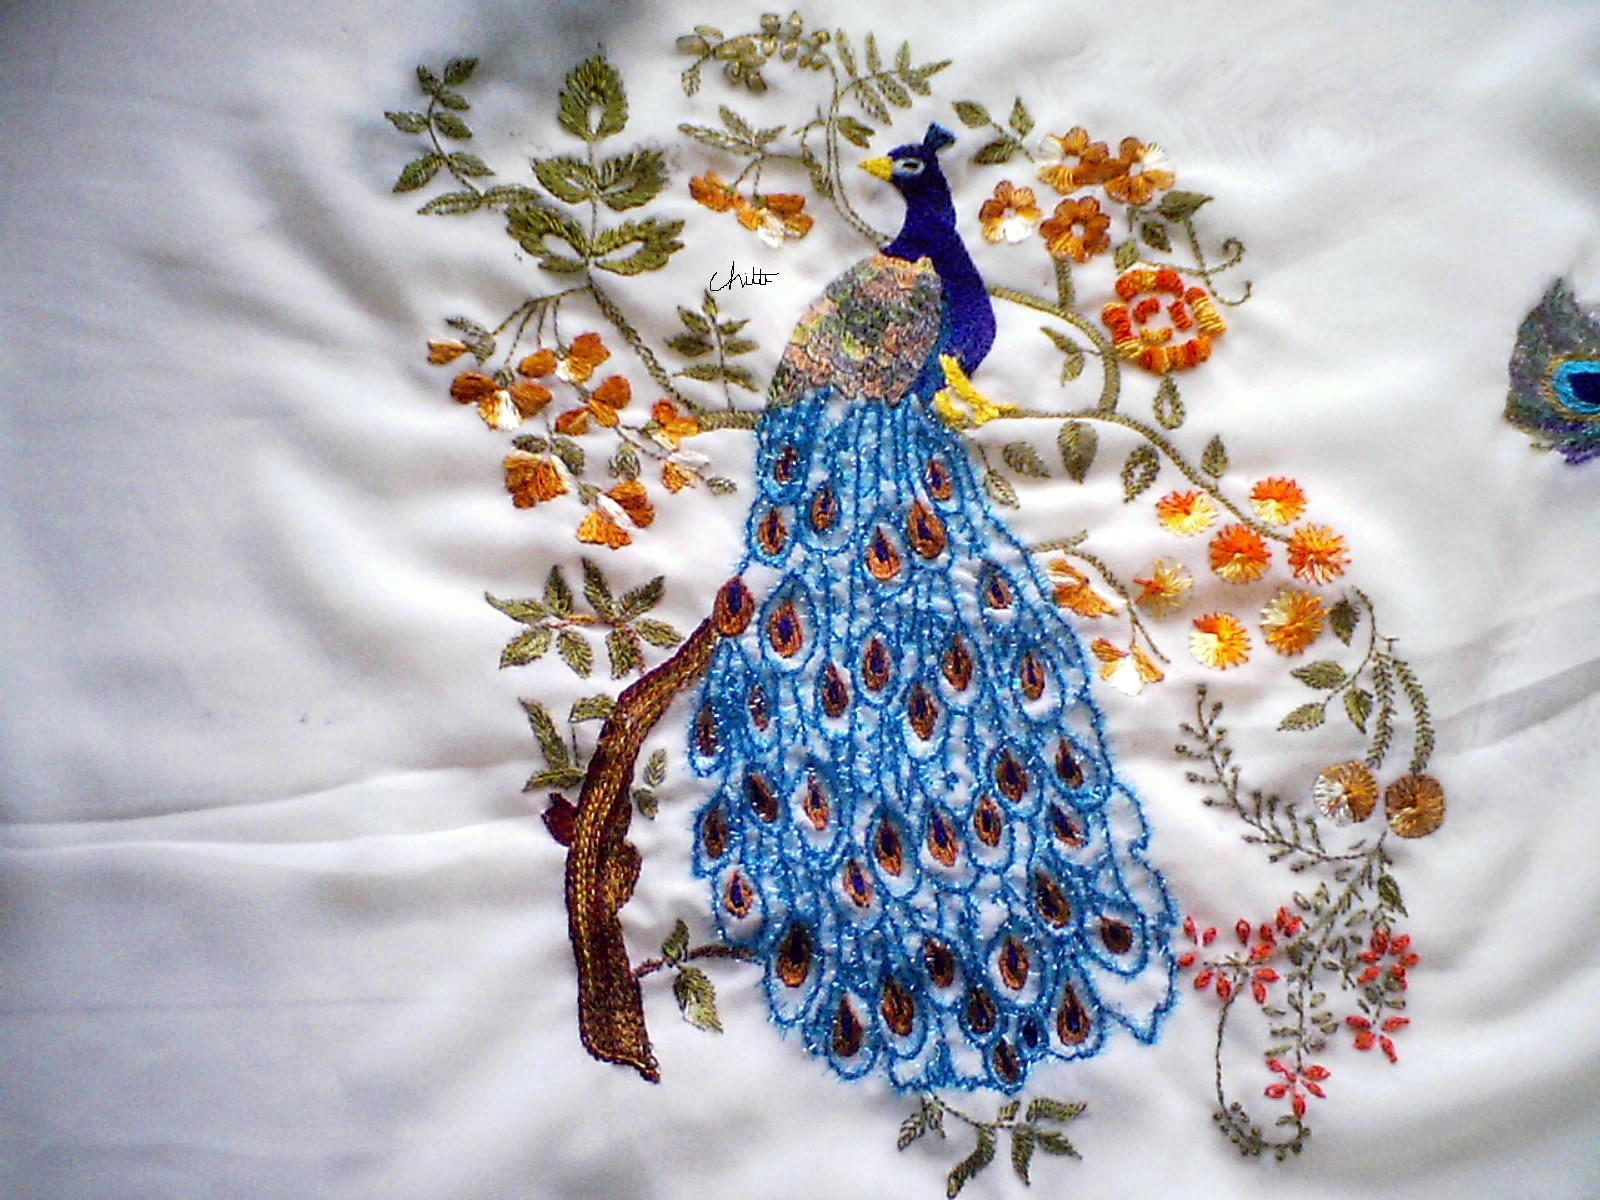 Sadala39s Embroidery PeacockMy Dream Project